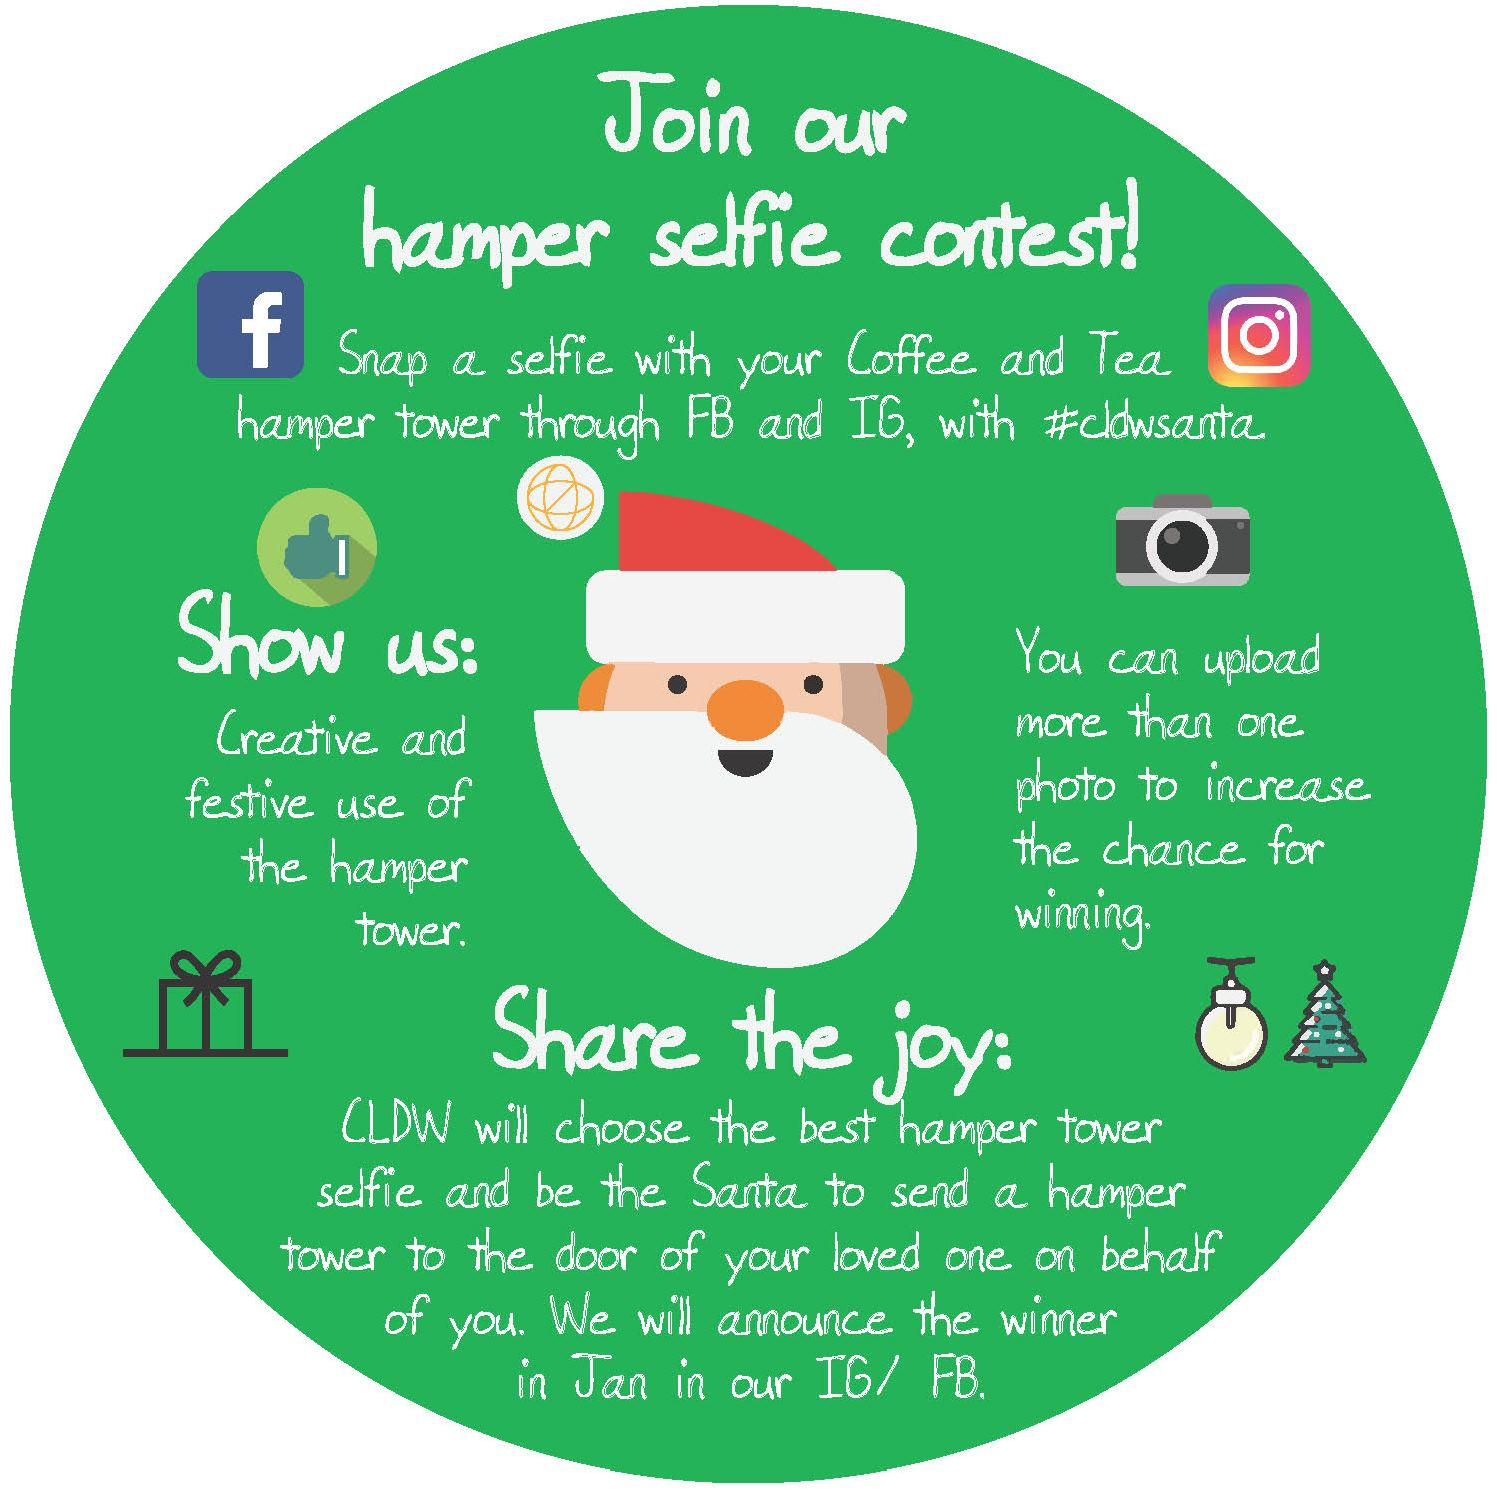 Join our hamper selfie contest and spread the joy to your loved ones!